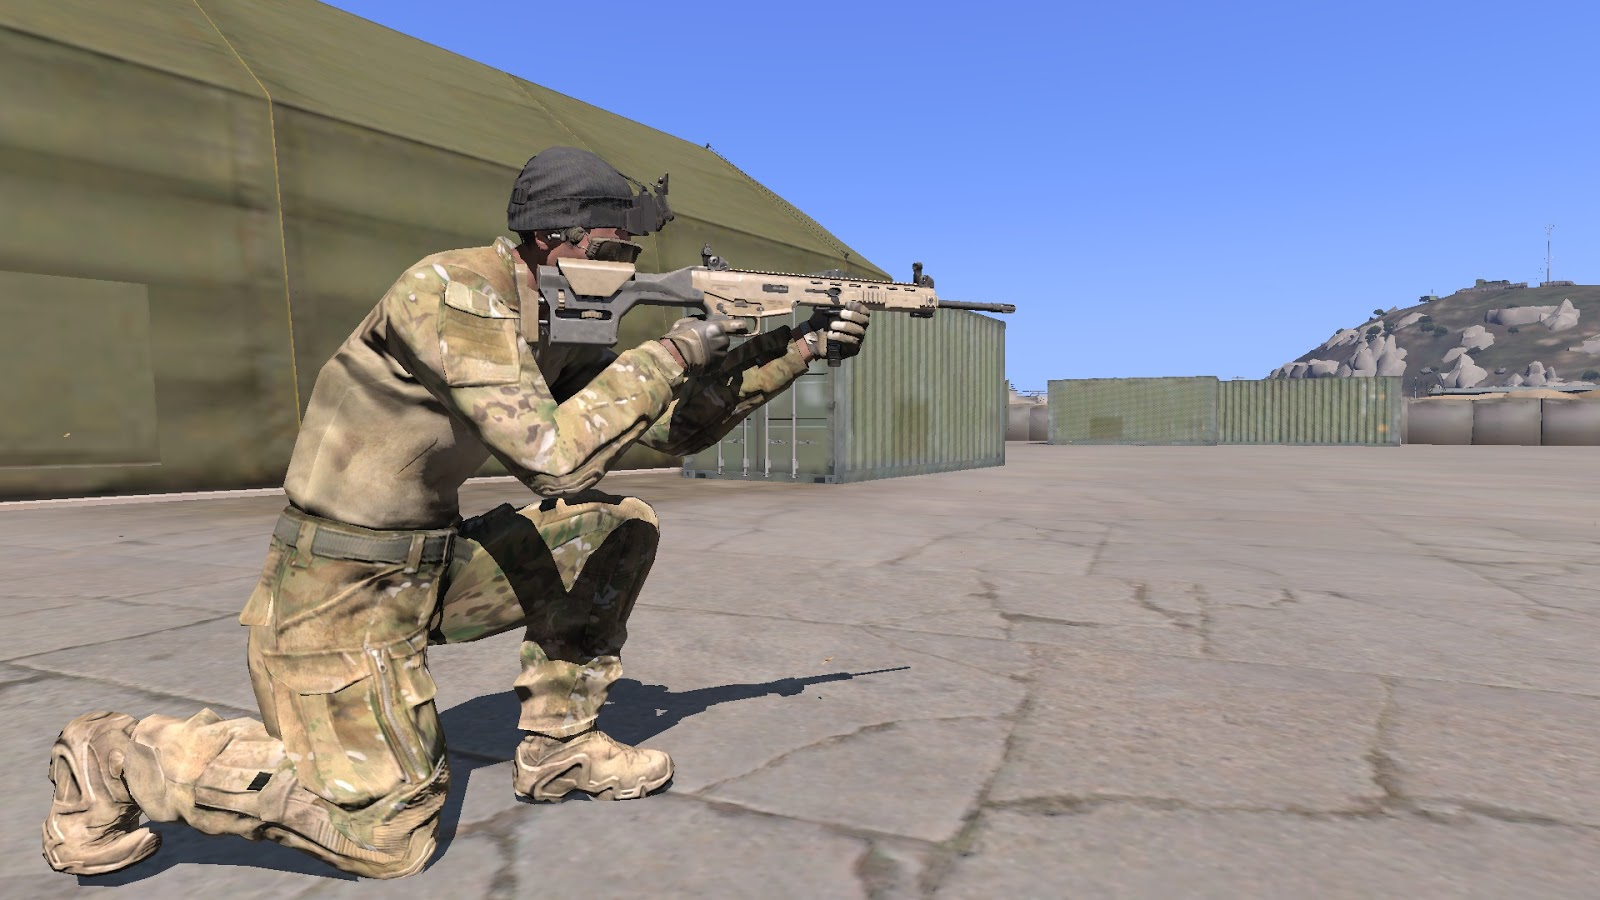 ArmA 3 Scripting Tutorials: Adding Weapons, Attachments and Ammo